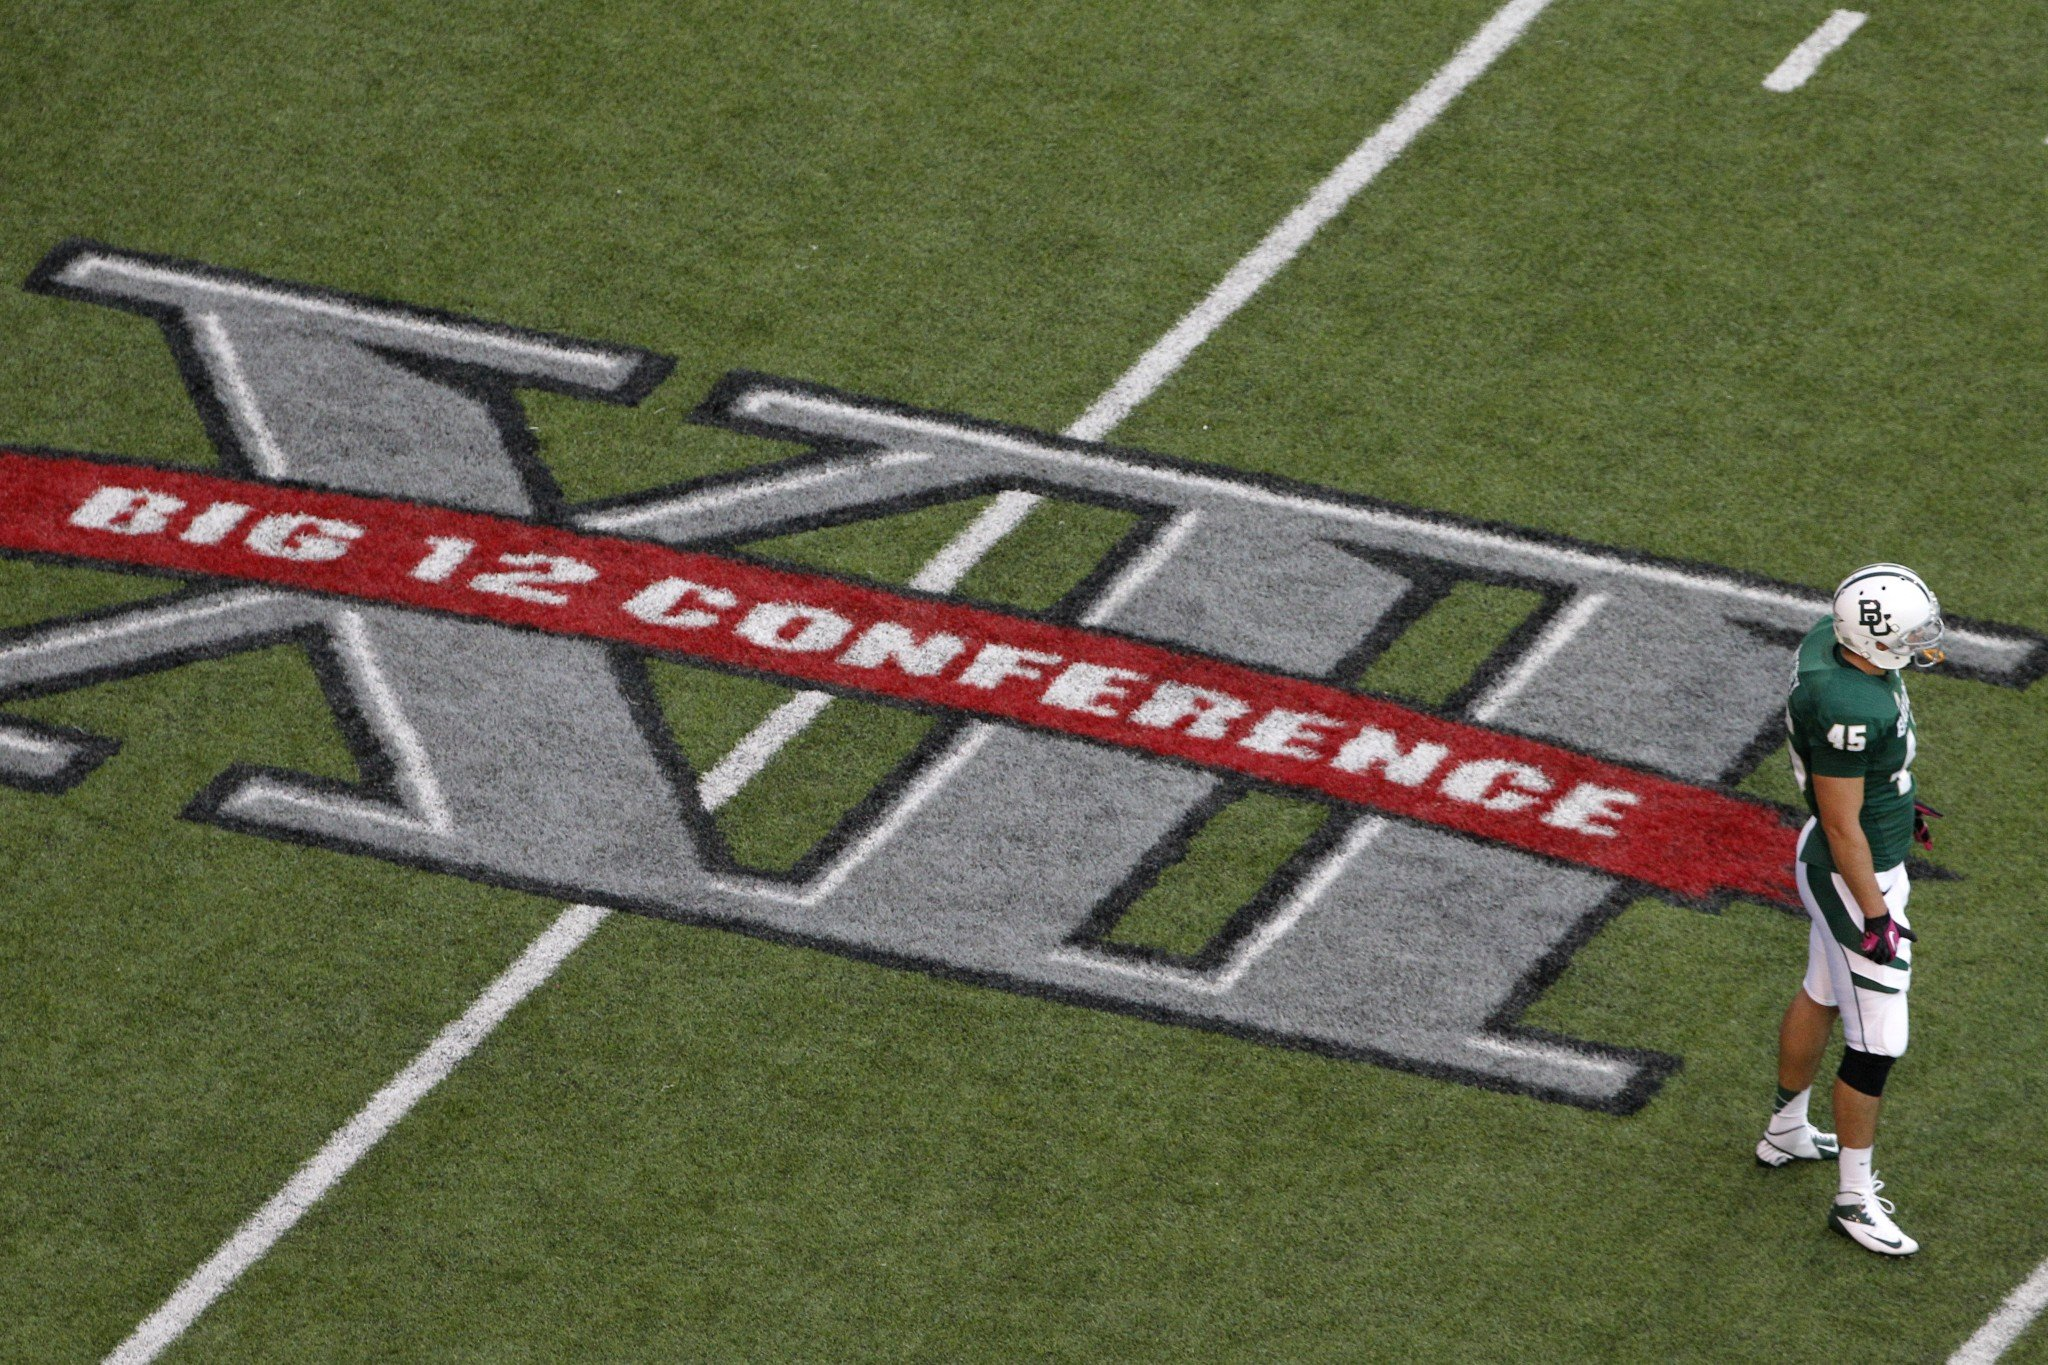 Big 12 decides to stay at 10 teams